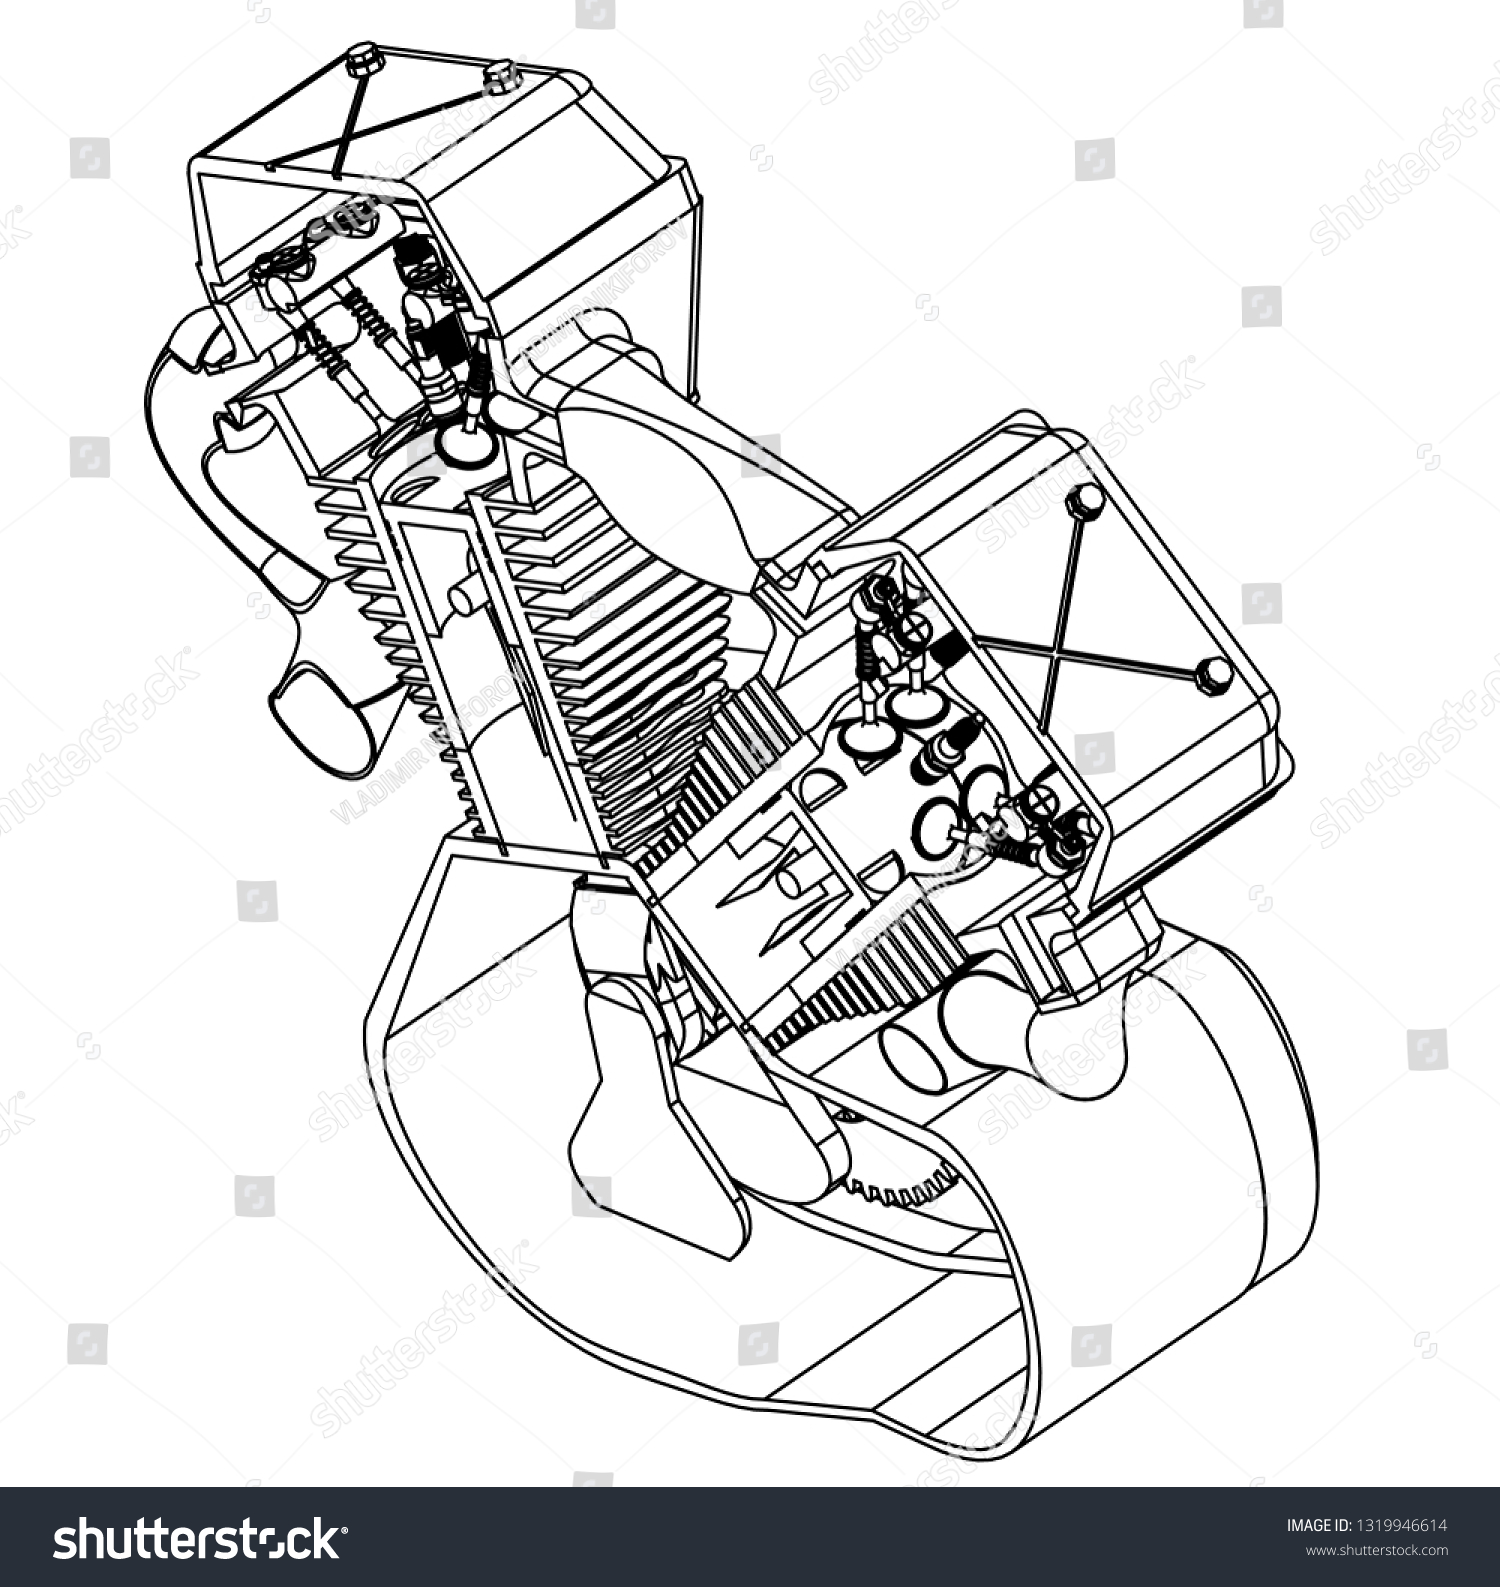 hight resolution of motorcycle engine on a white background drawing